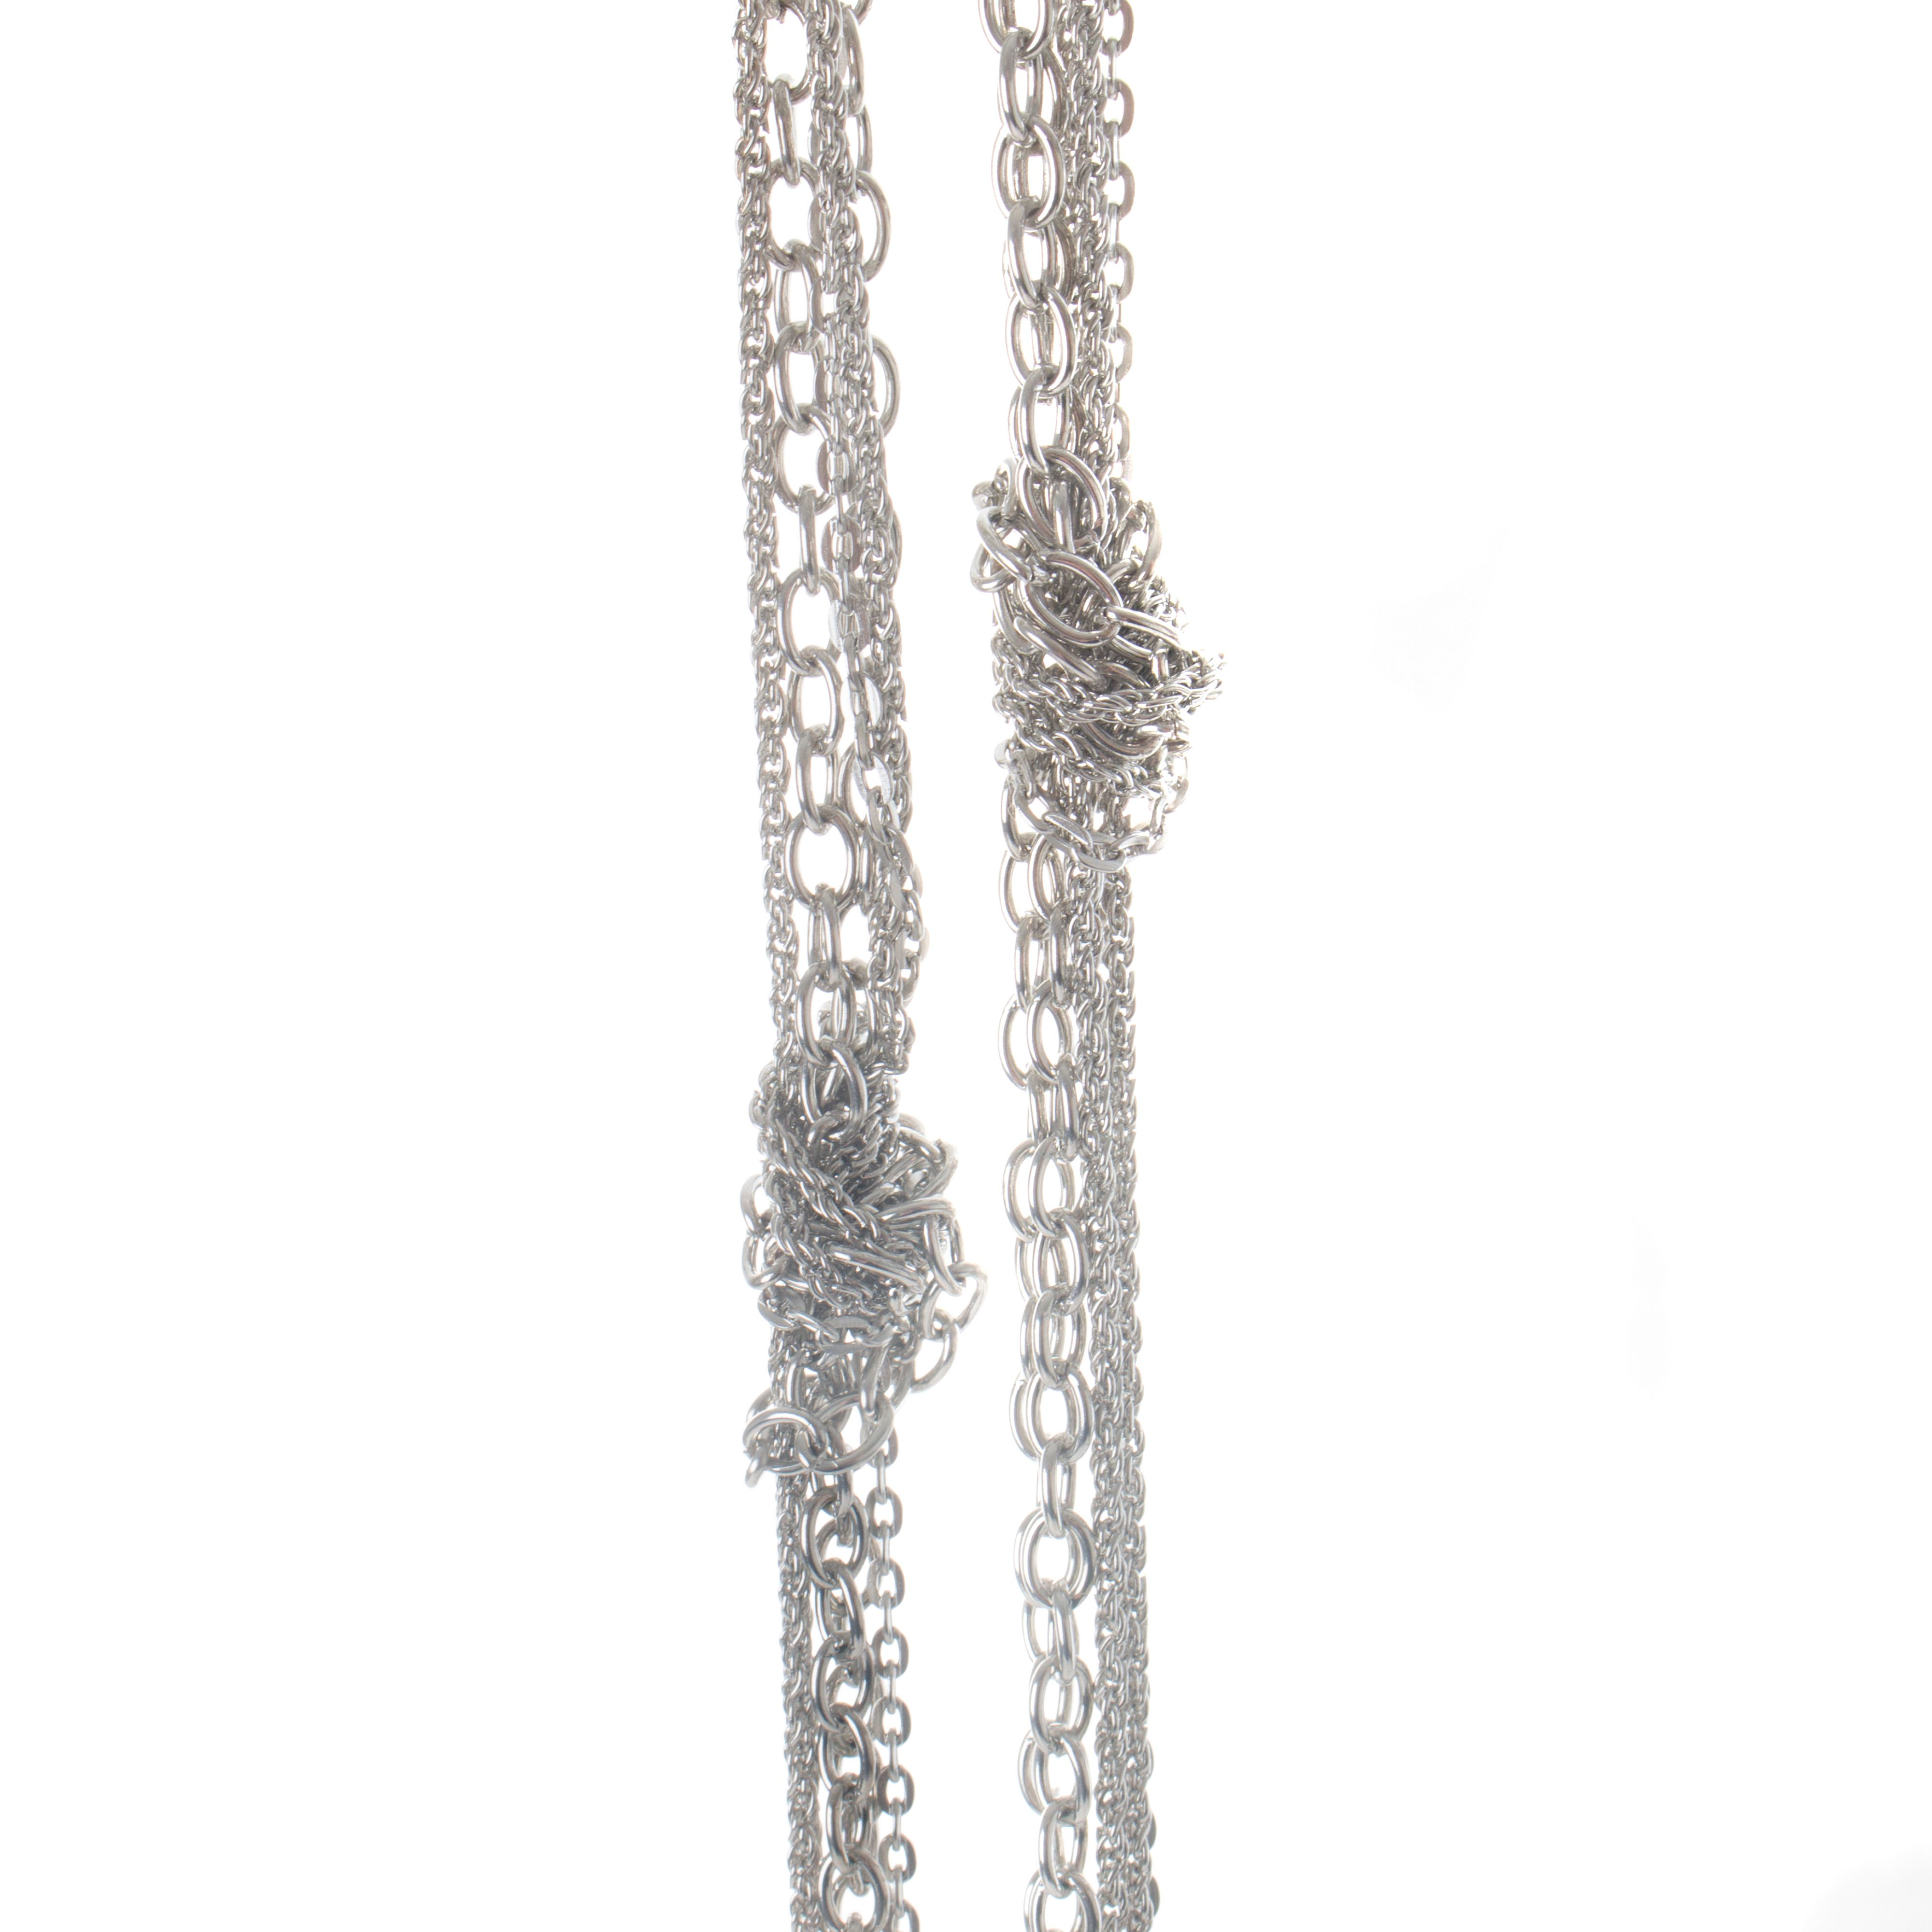 Gaby Gaby Aria knotted chain necklace, N/A